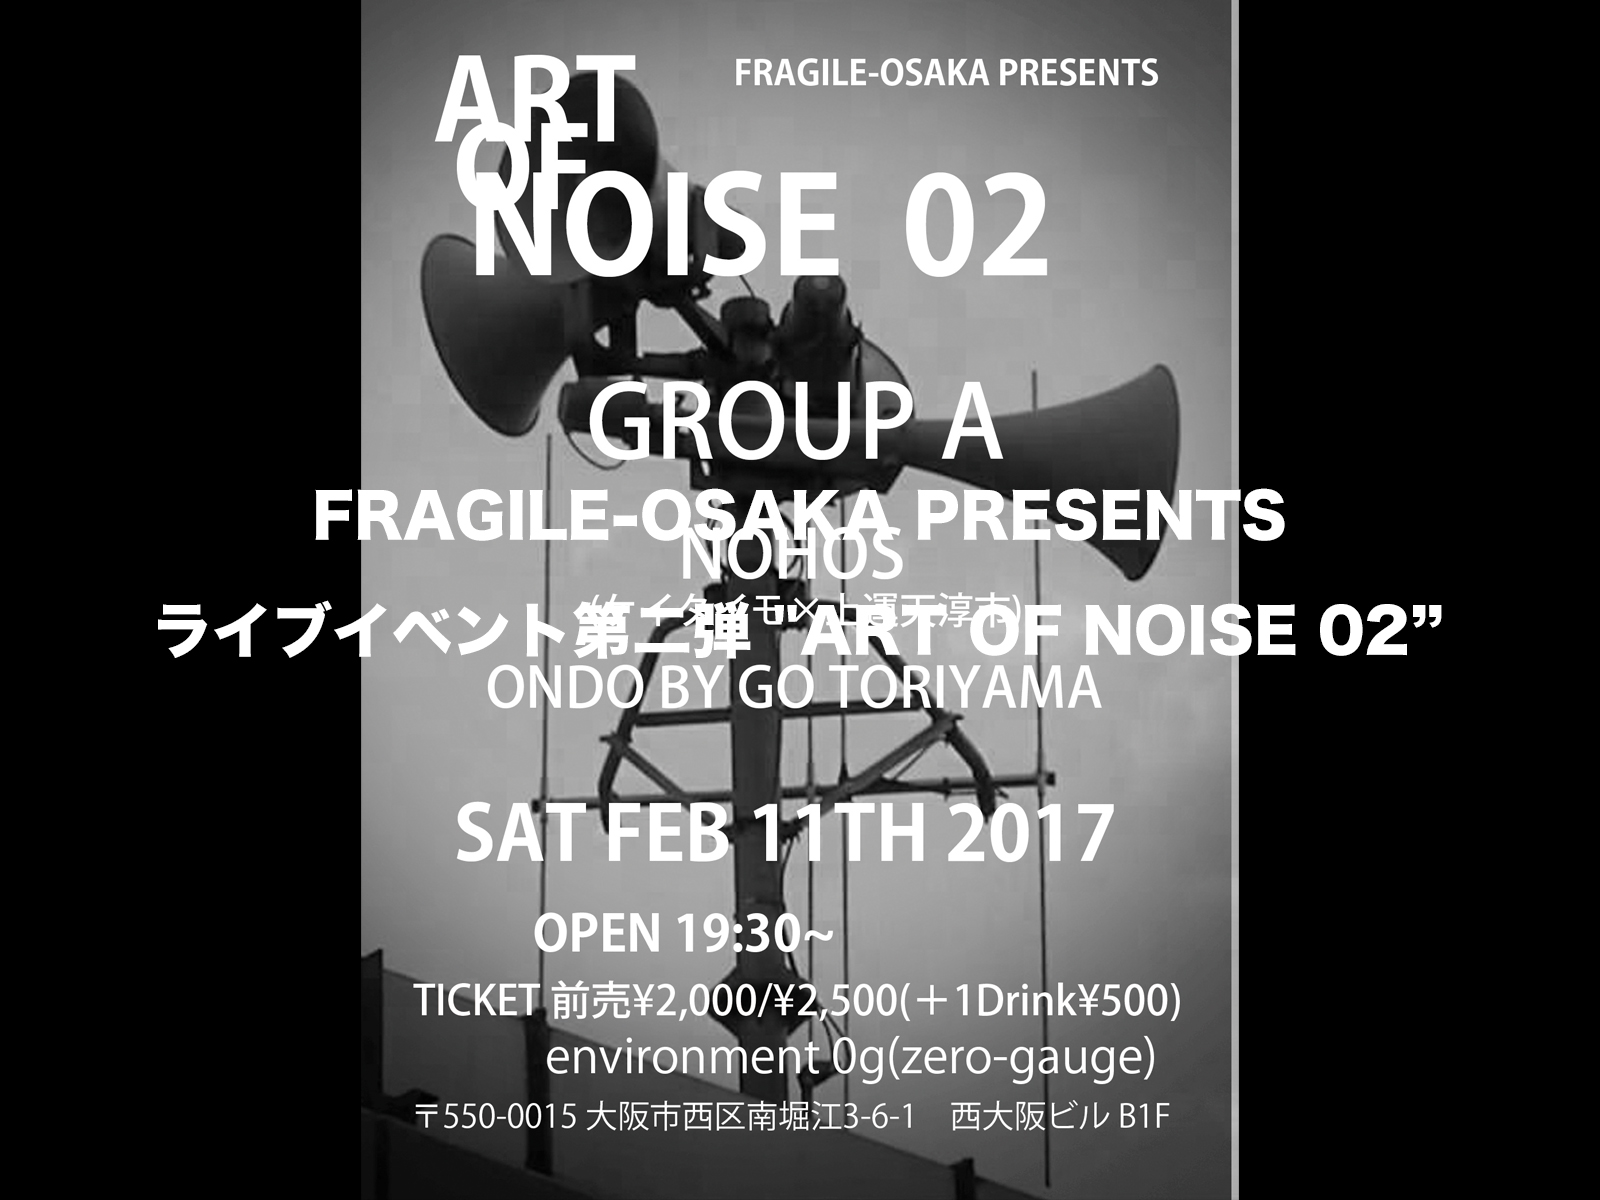 ART OF NOISE 02 : TIMETABLE